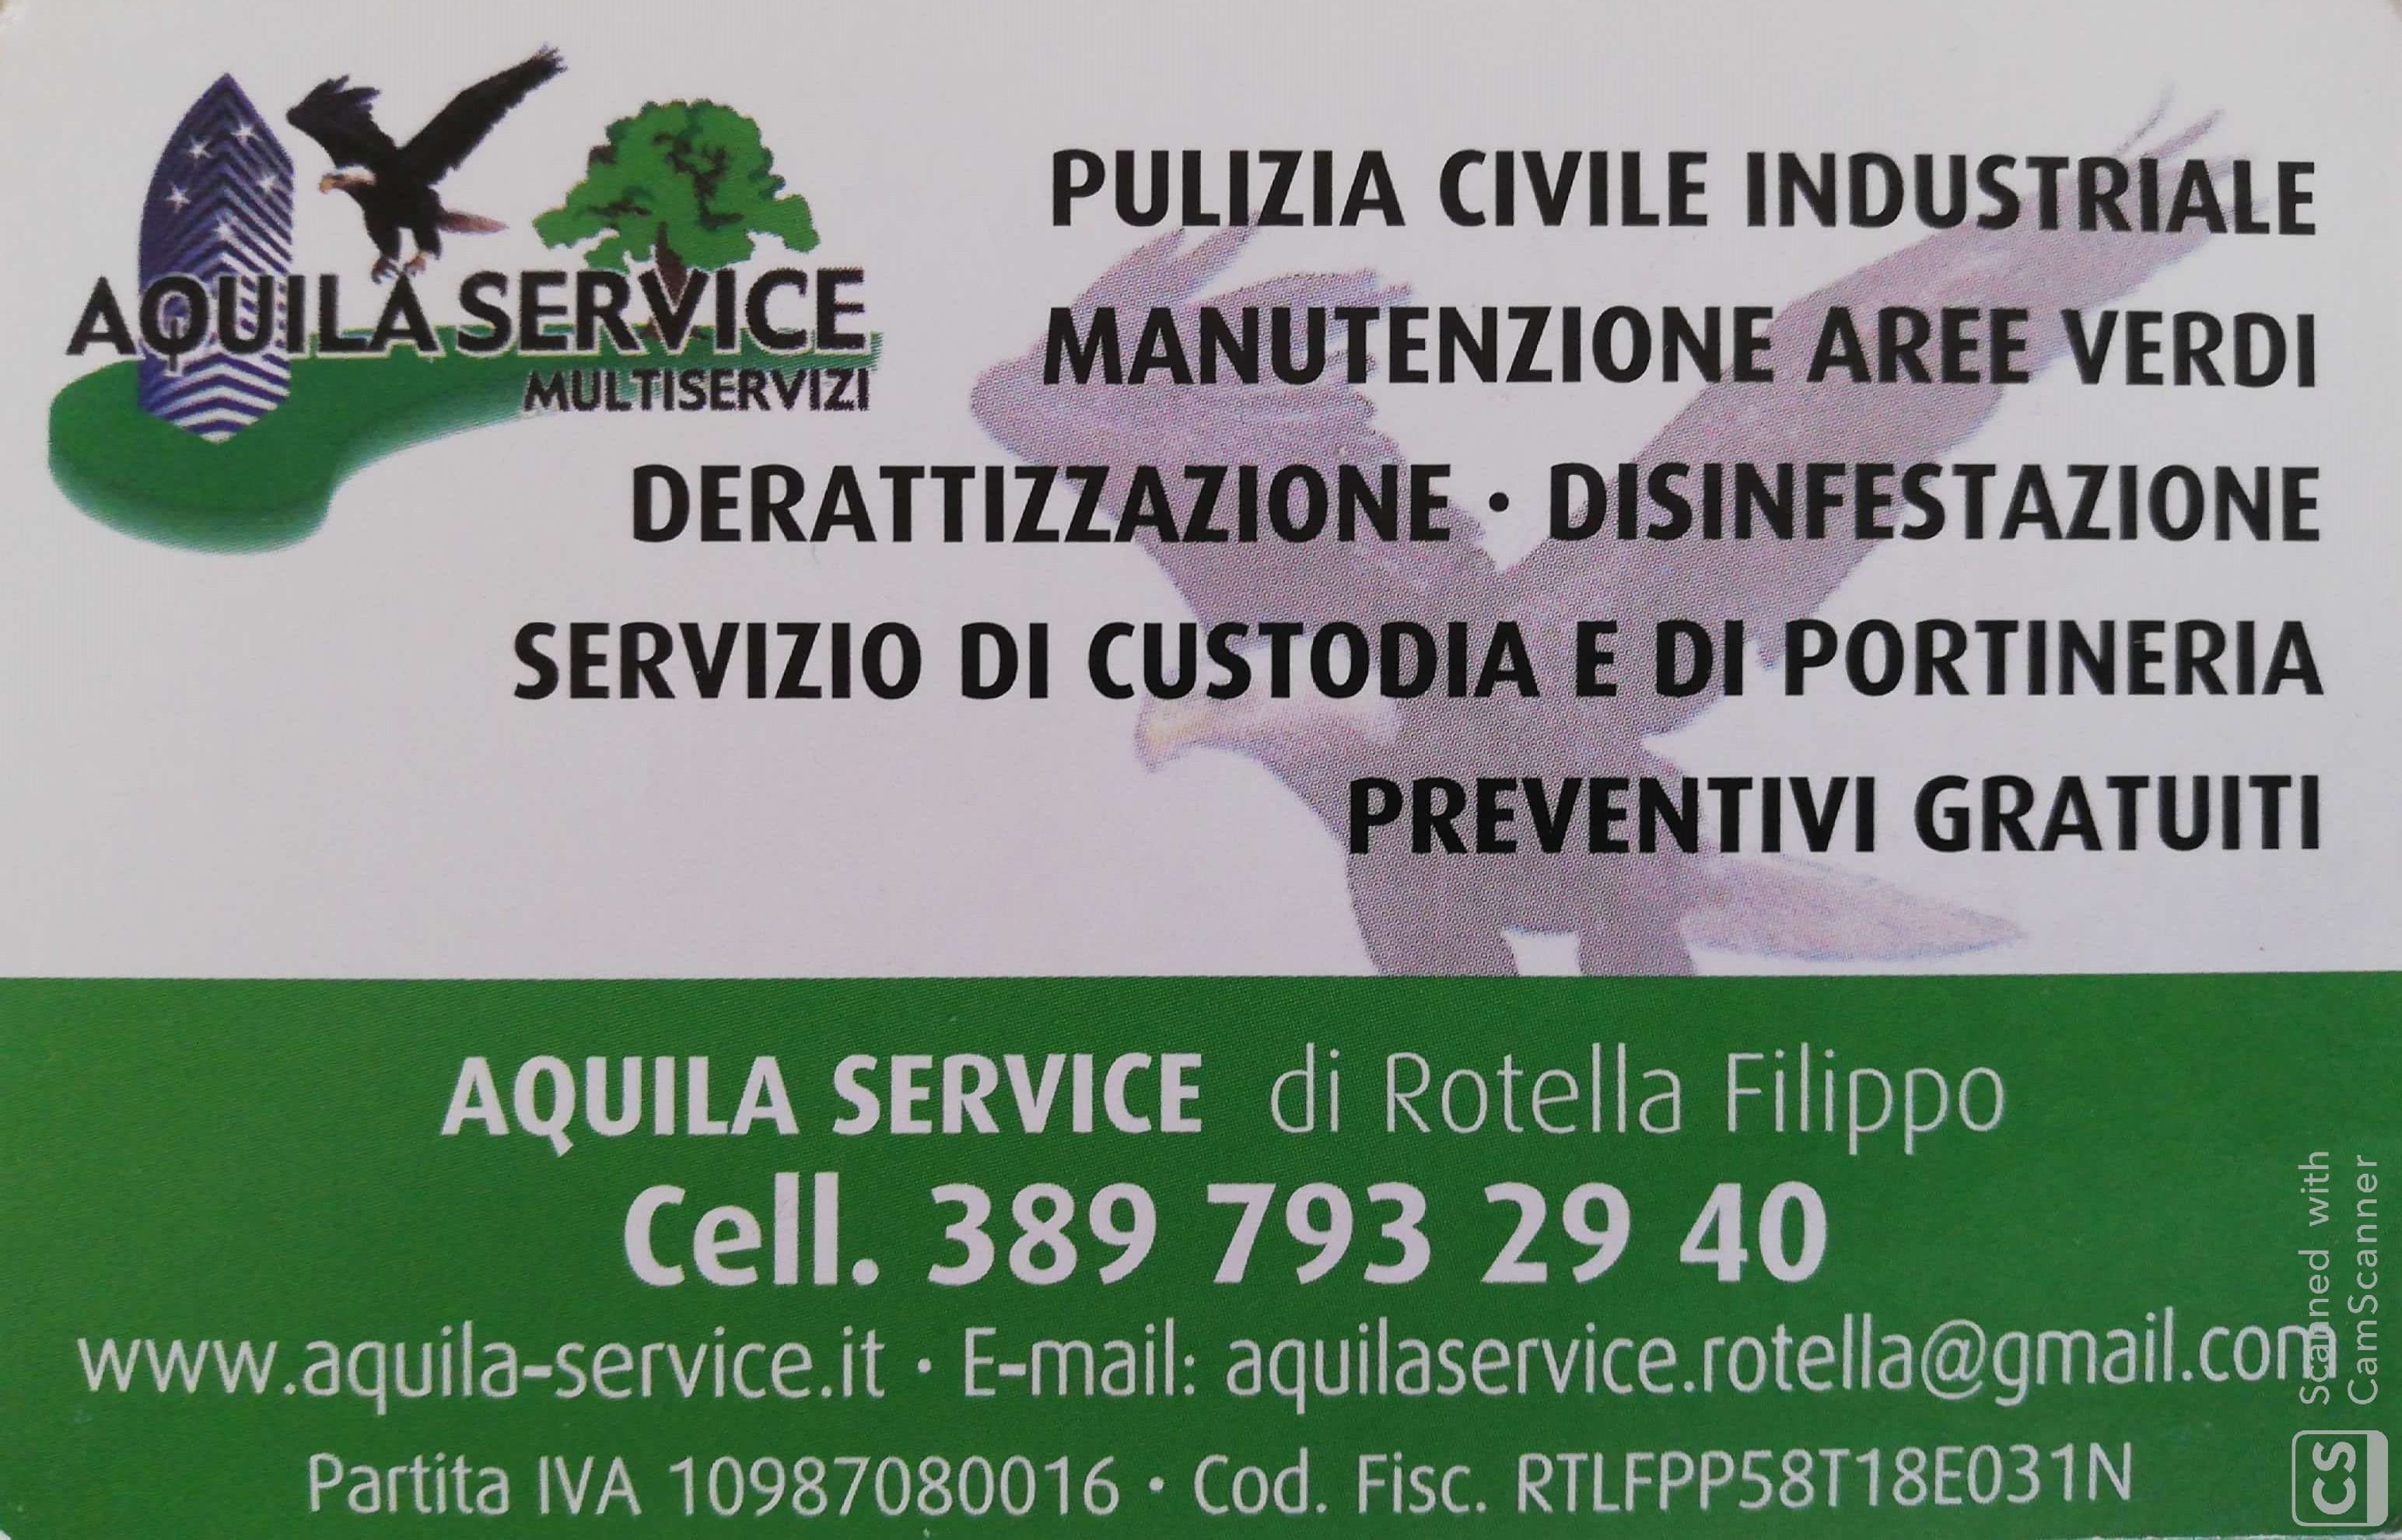 http://usdgimigliano.it/wp-content/uploads/2019/08/Aquila-Services.jpg